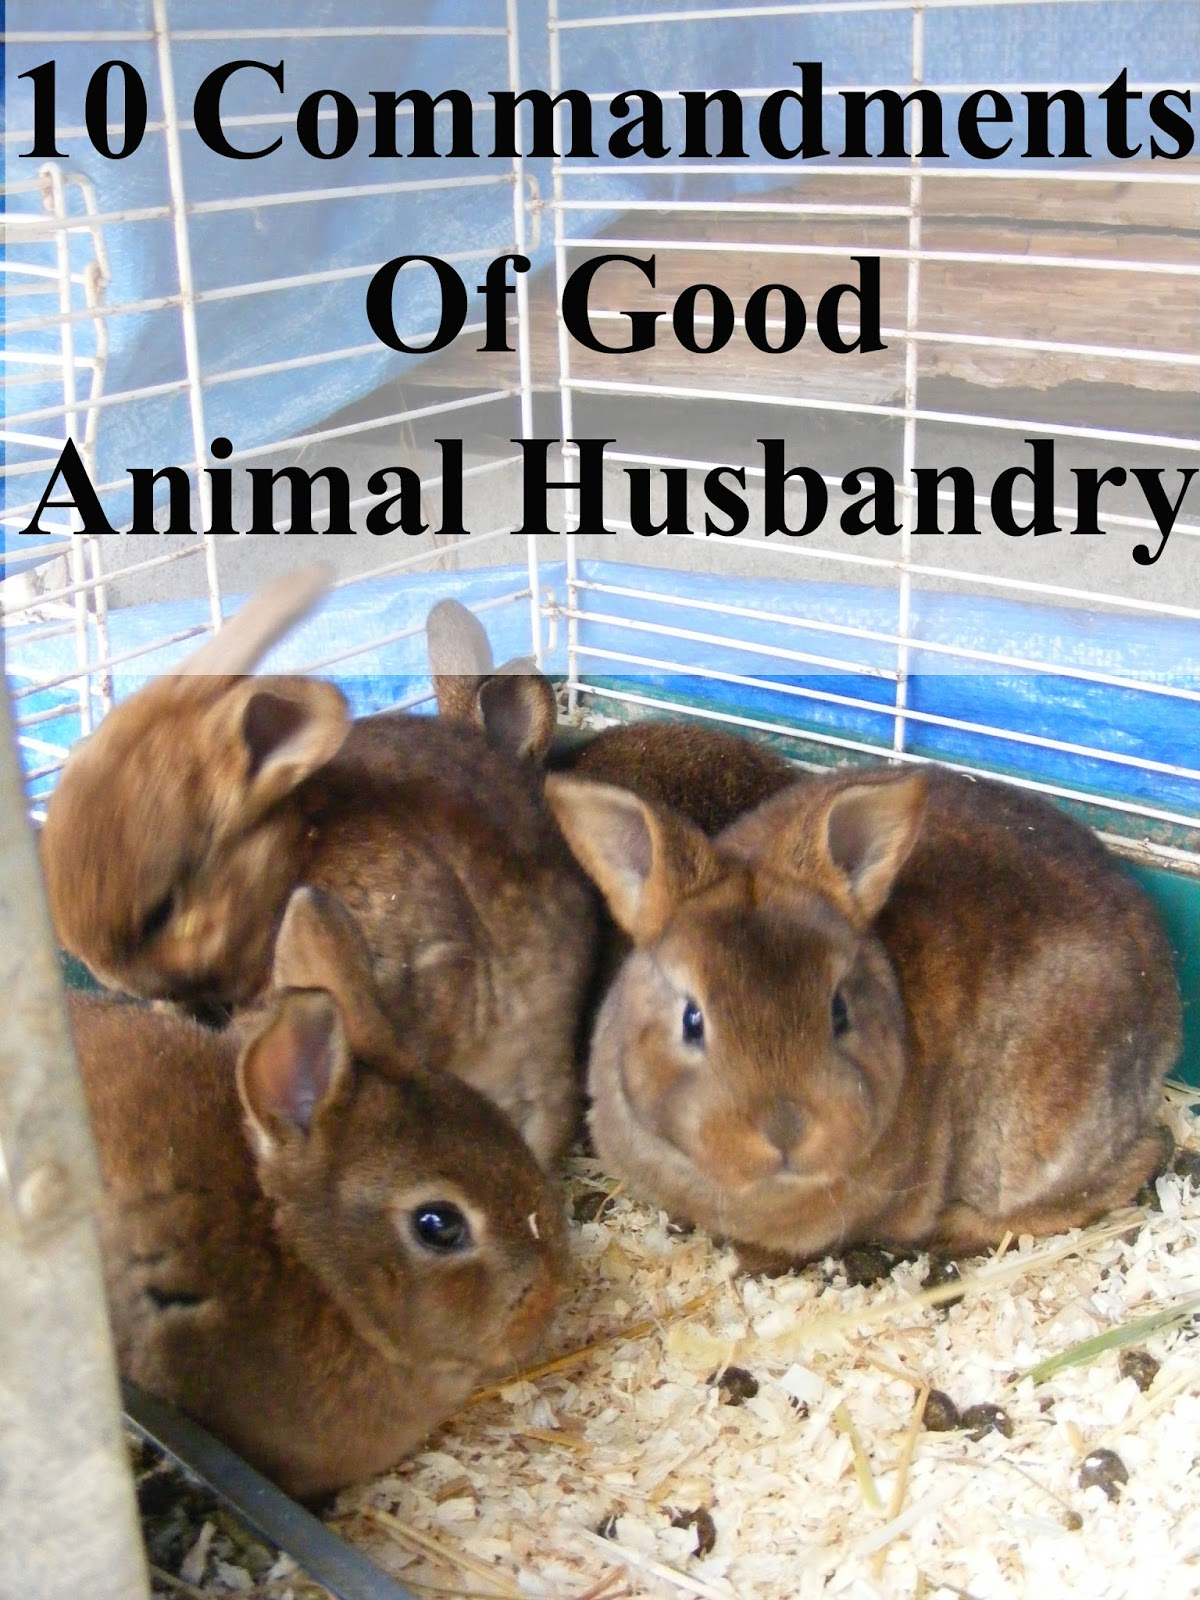 10 Commandments of Good Animal Husbandry